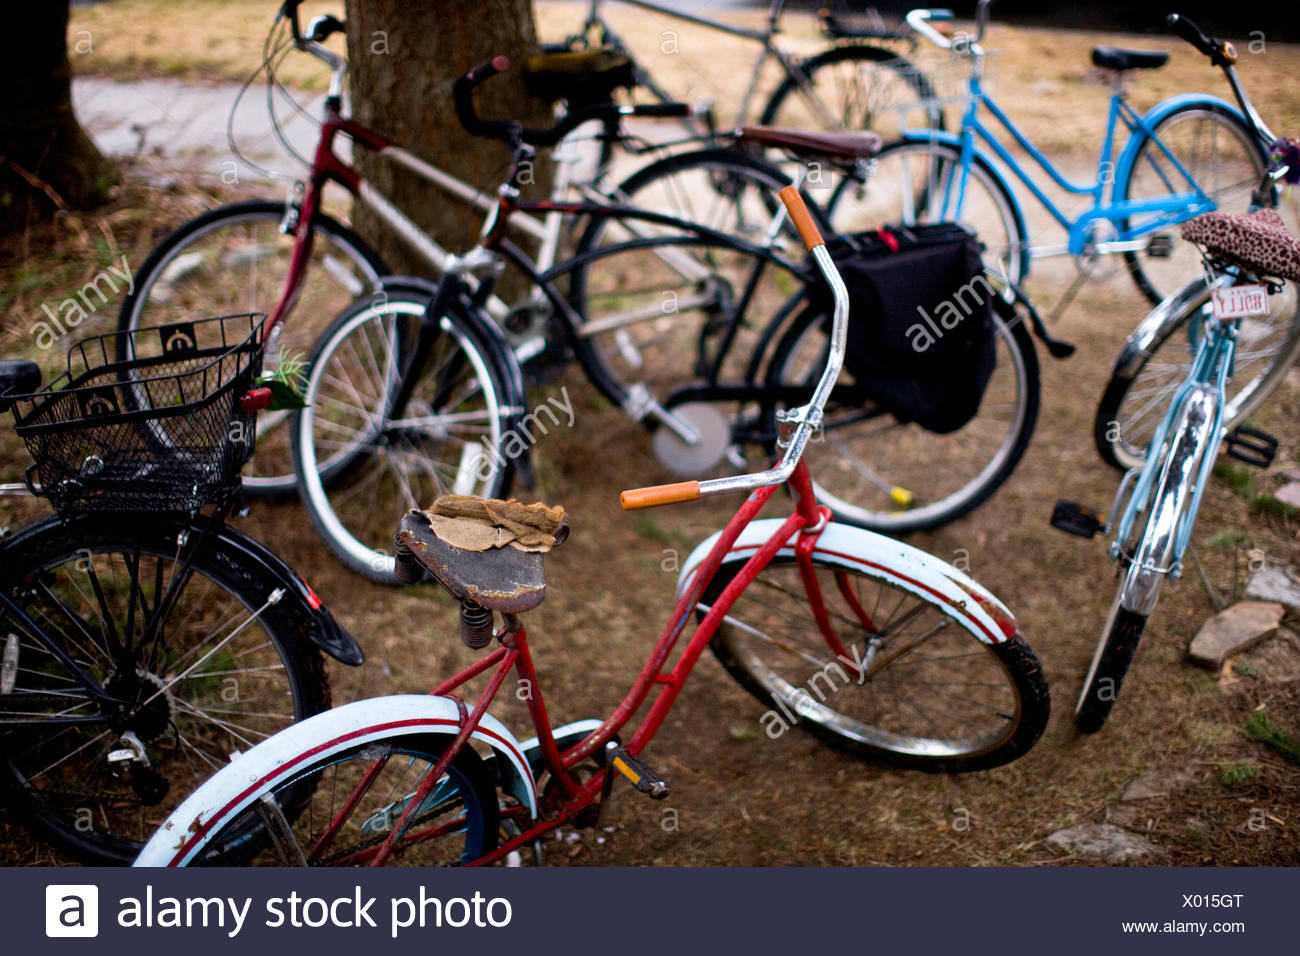 A quiver of cruiser bikes outside a neighborhood house in Sandpoint, Idaho. - Stock Image